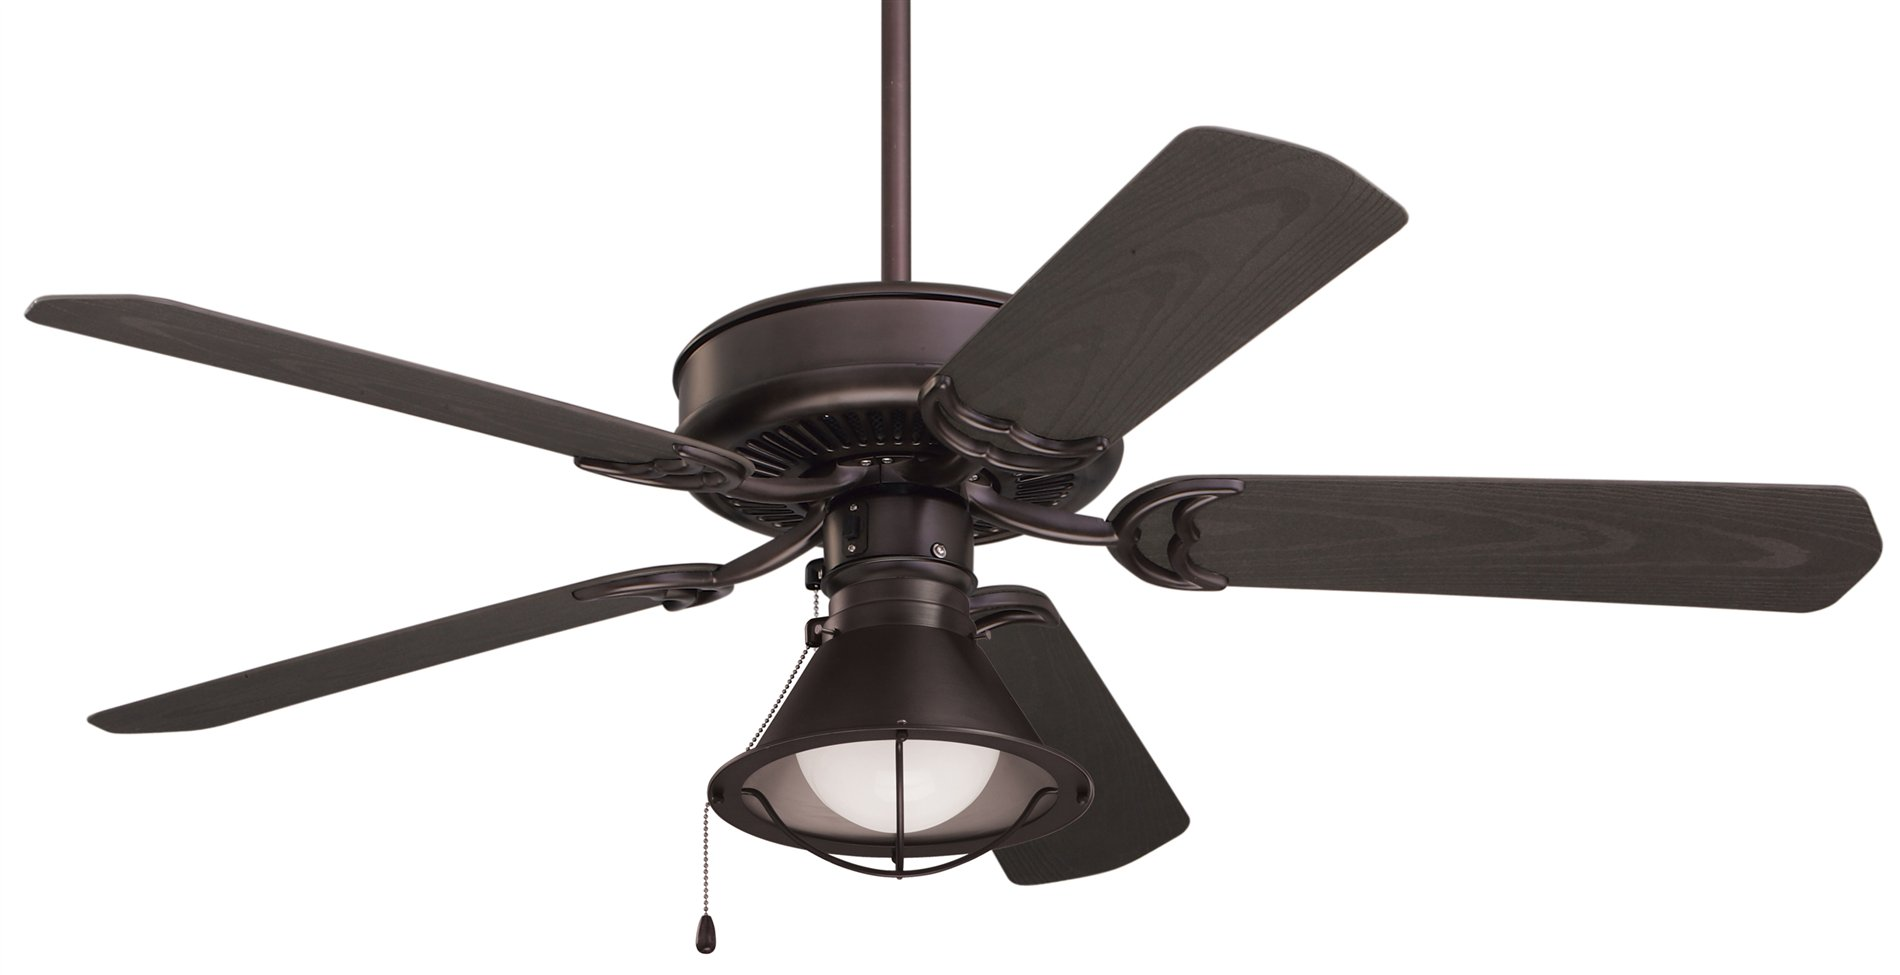 emerson lk46 seaside wet location classic ceiling fan. Black Bedroom Furniture Sets. Home Design Ideas